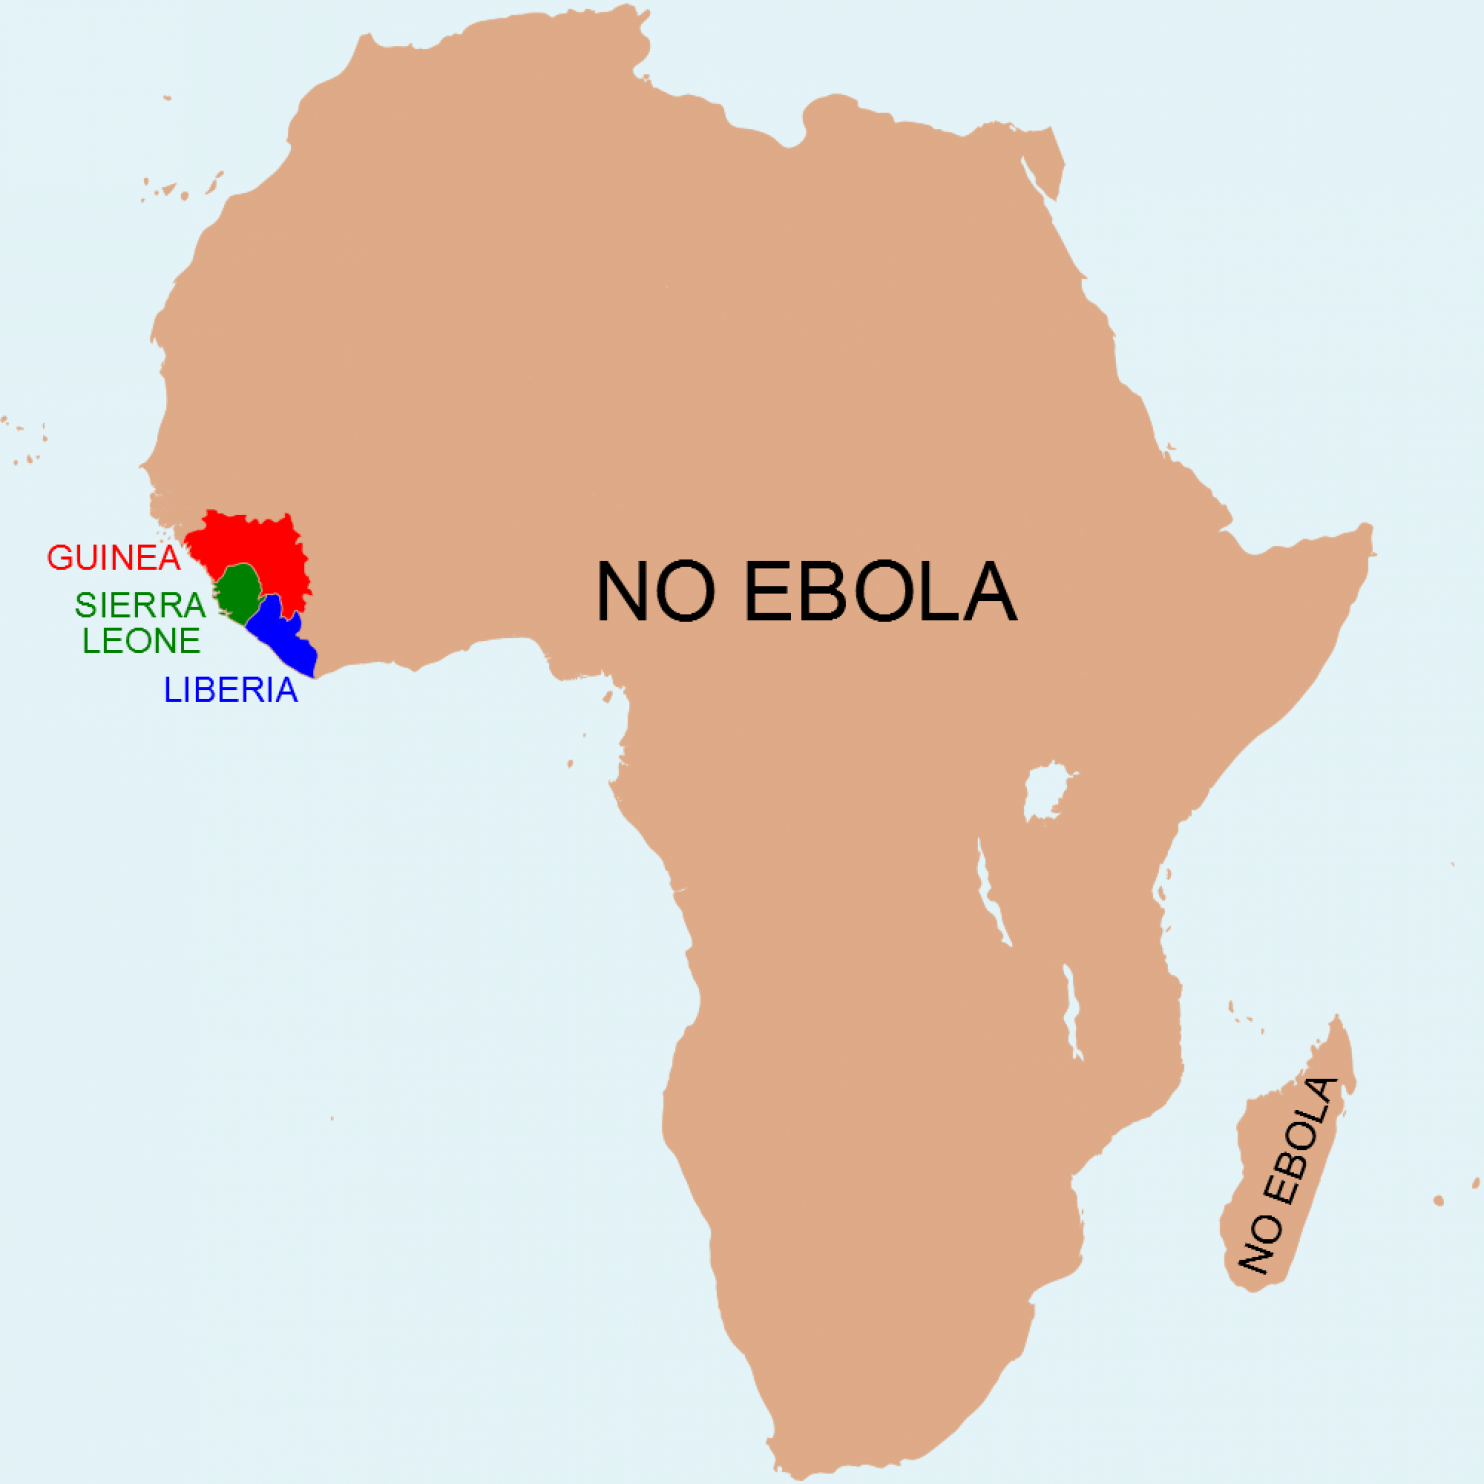 A map of Africa, highlighting the fact that most of the continent is Ebola-free